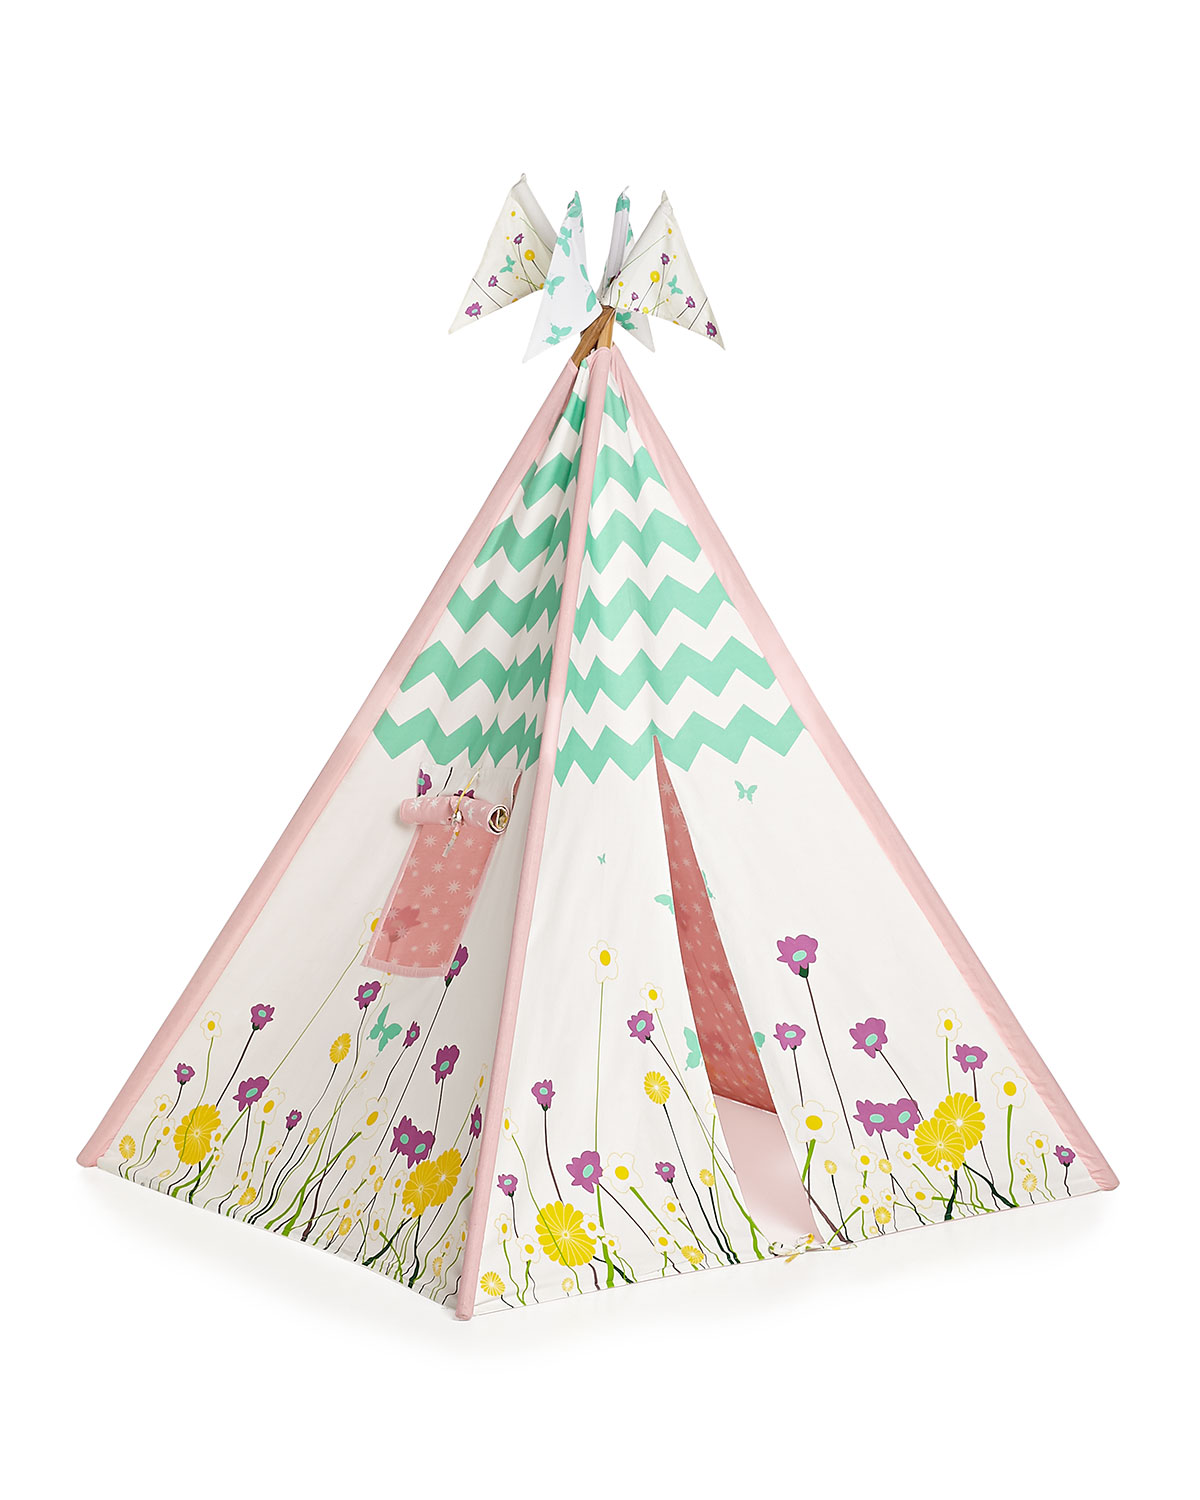 Pacific Play Tents - Girls' Canvas Play Tent - Pacific Play Tents - Pink